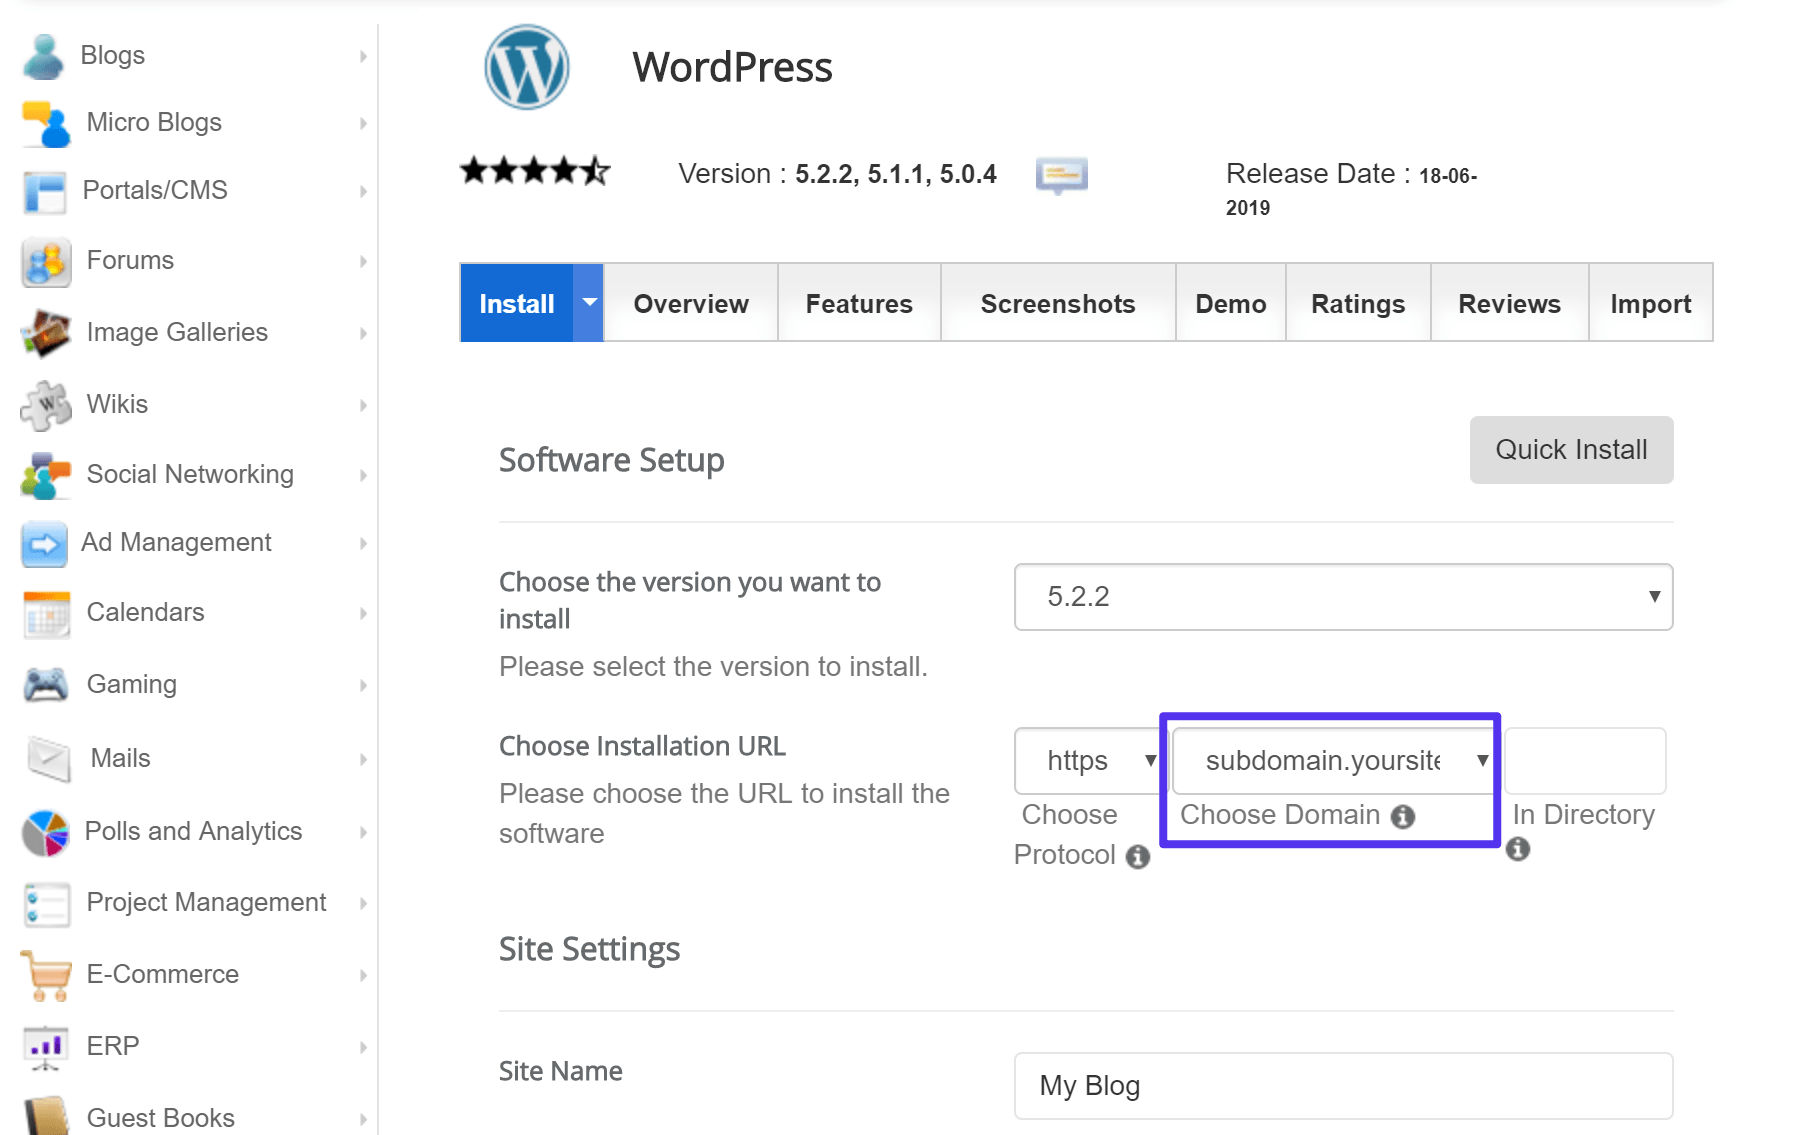 How to install WordPress on a subdomain with an autoinstaller